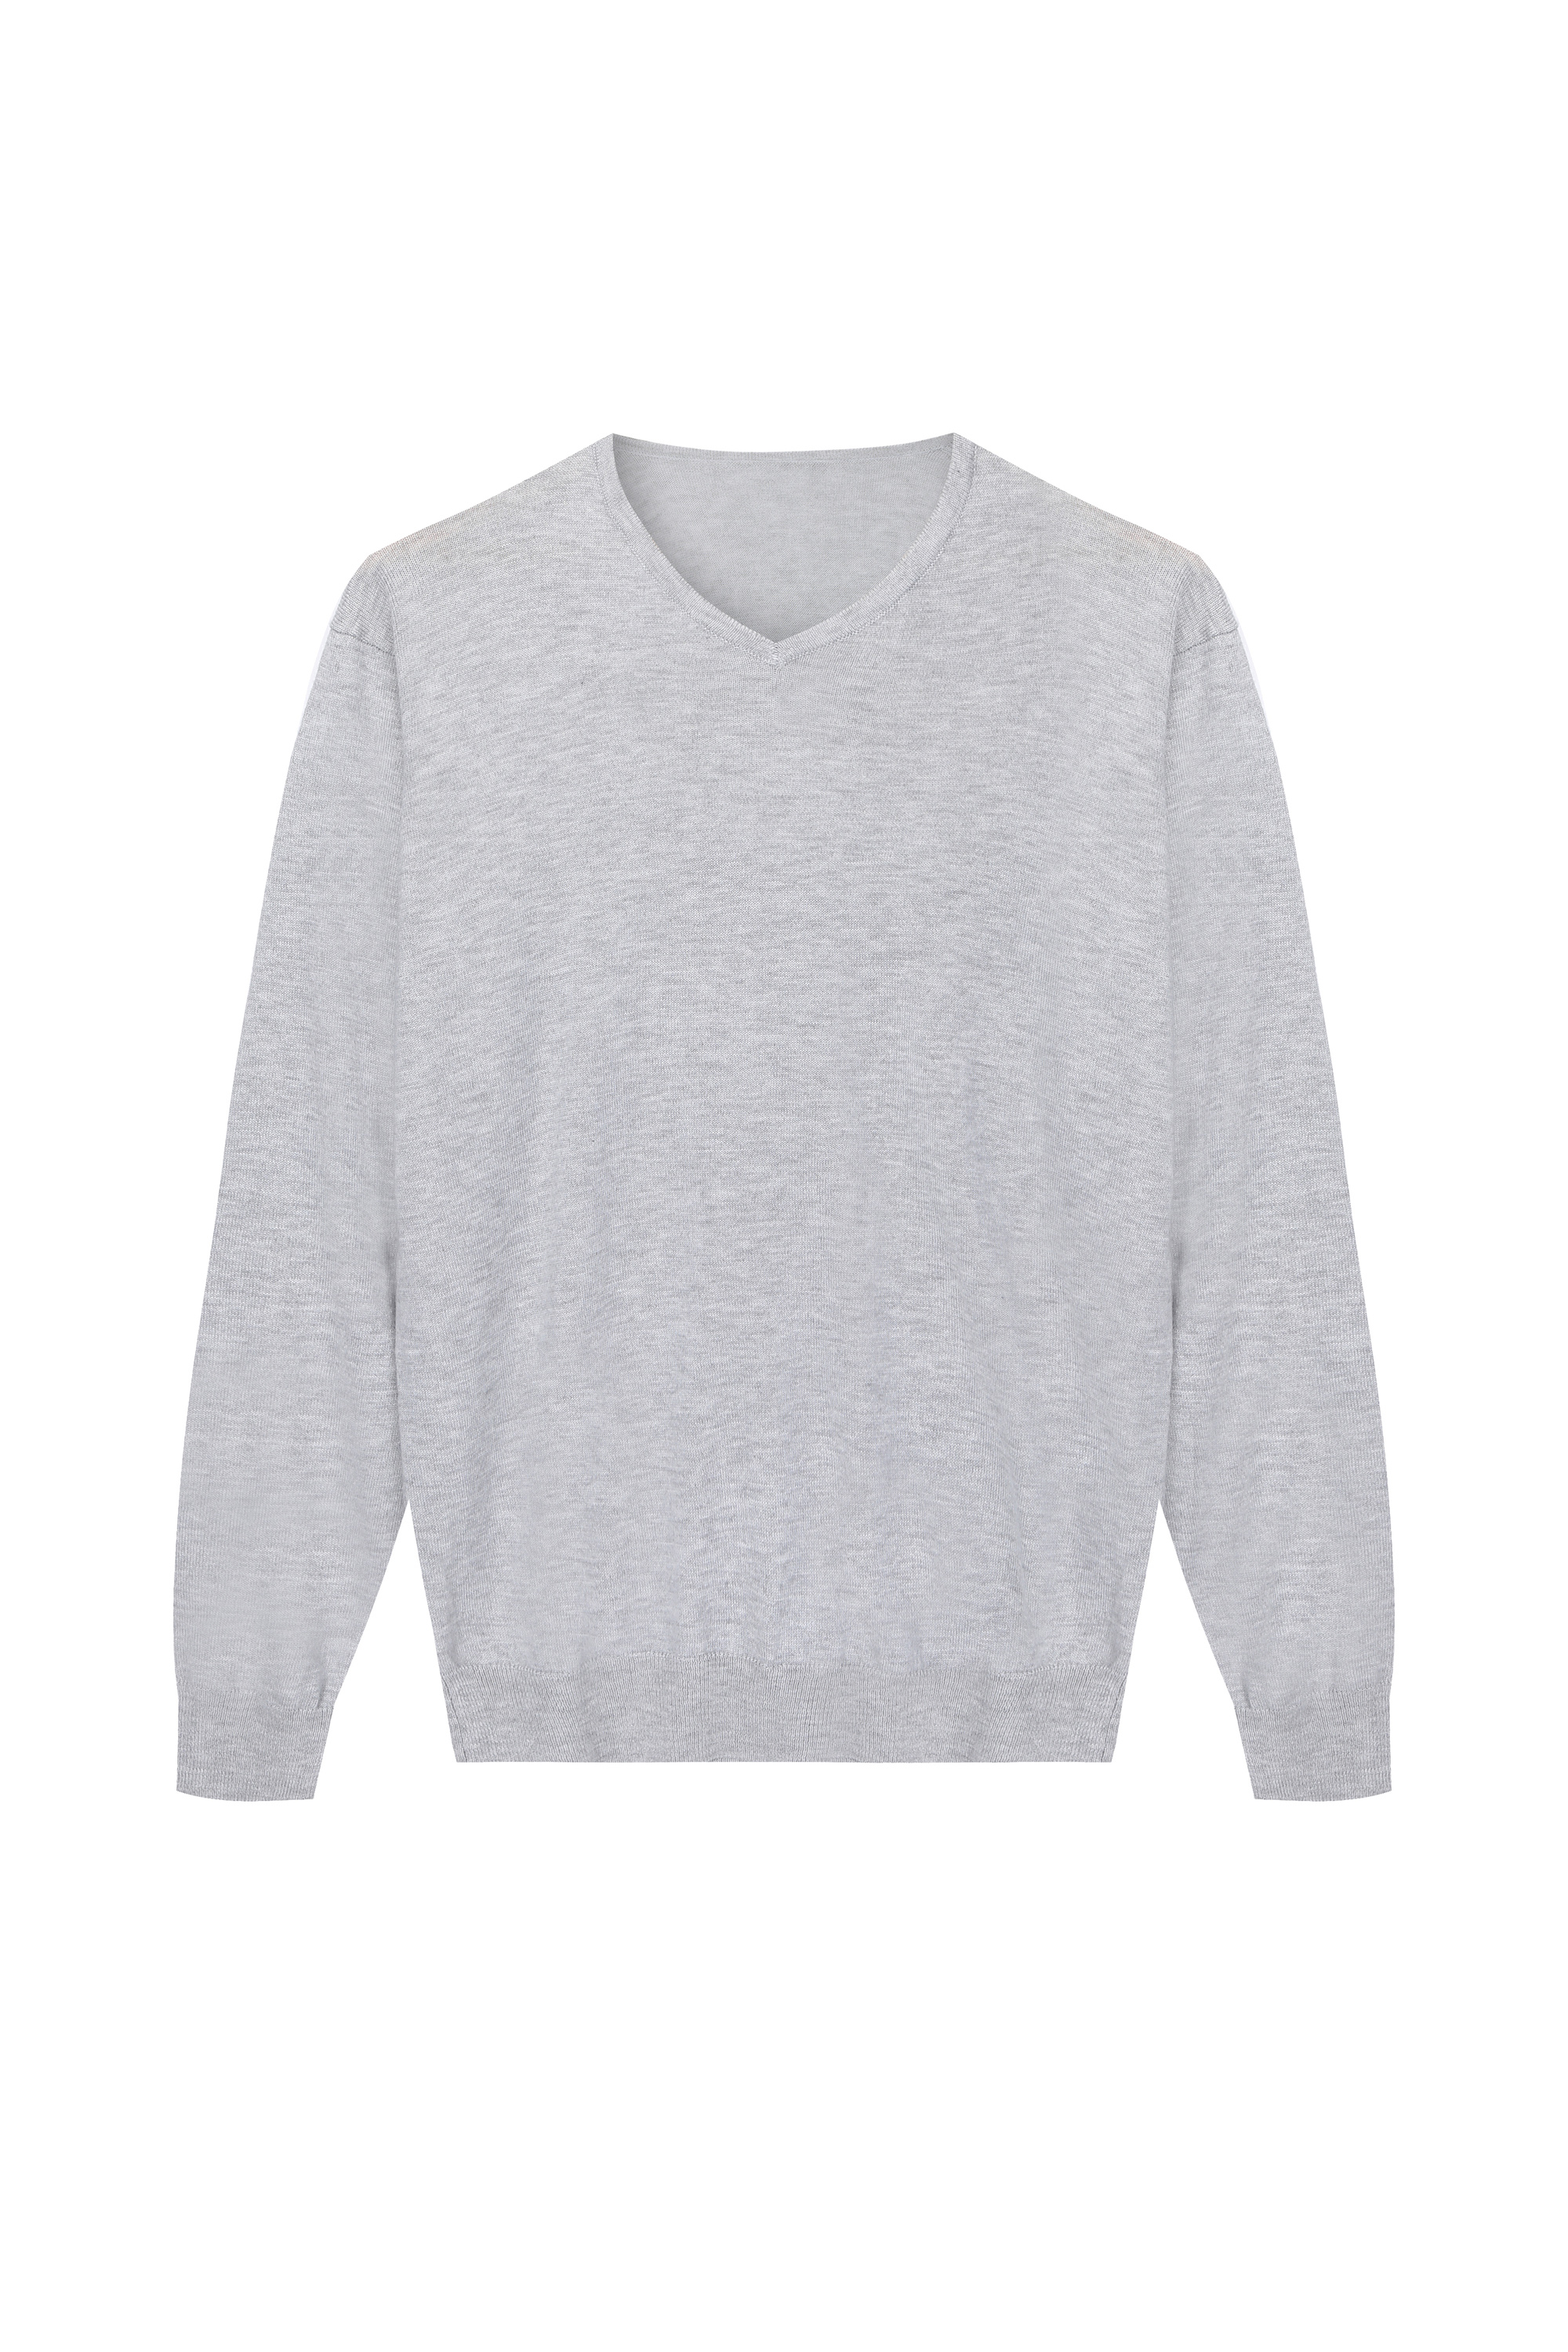 Men's Knitted Essential Cashmere Pullover V-Neck